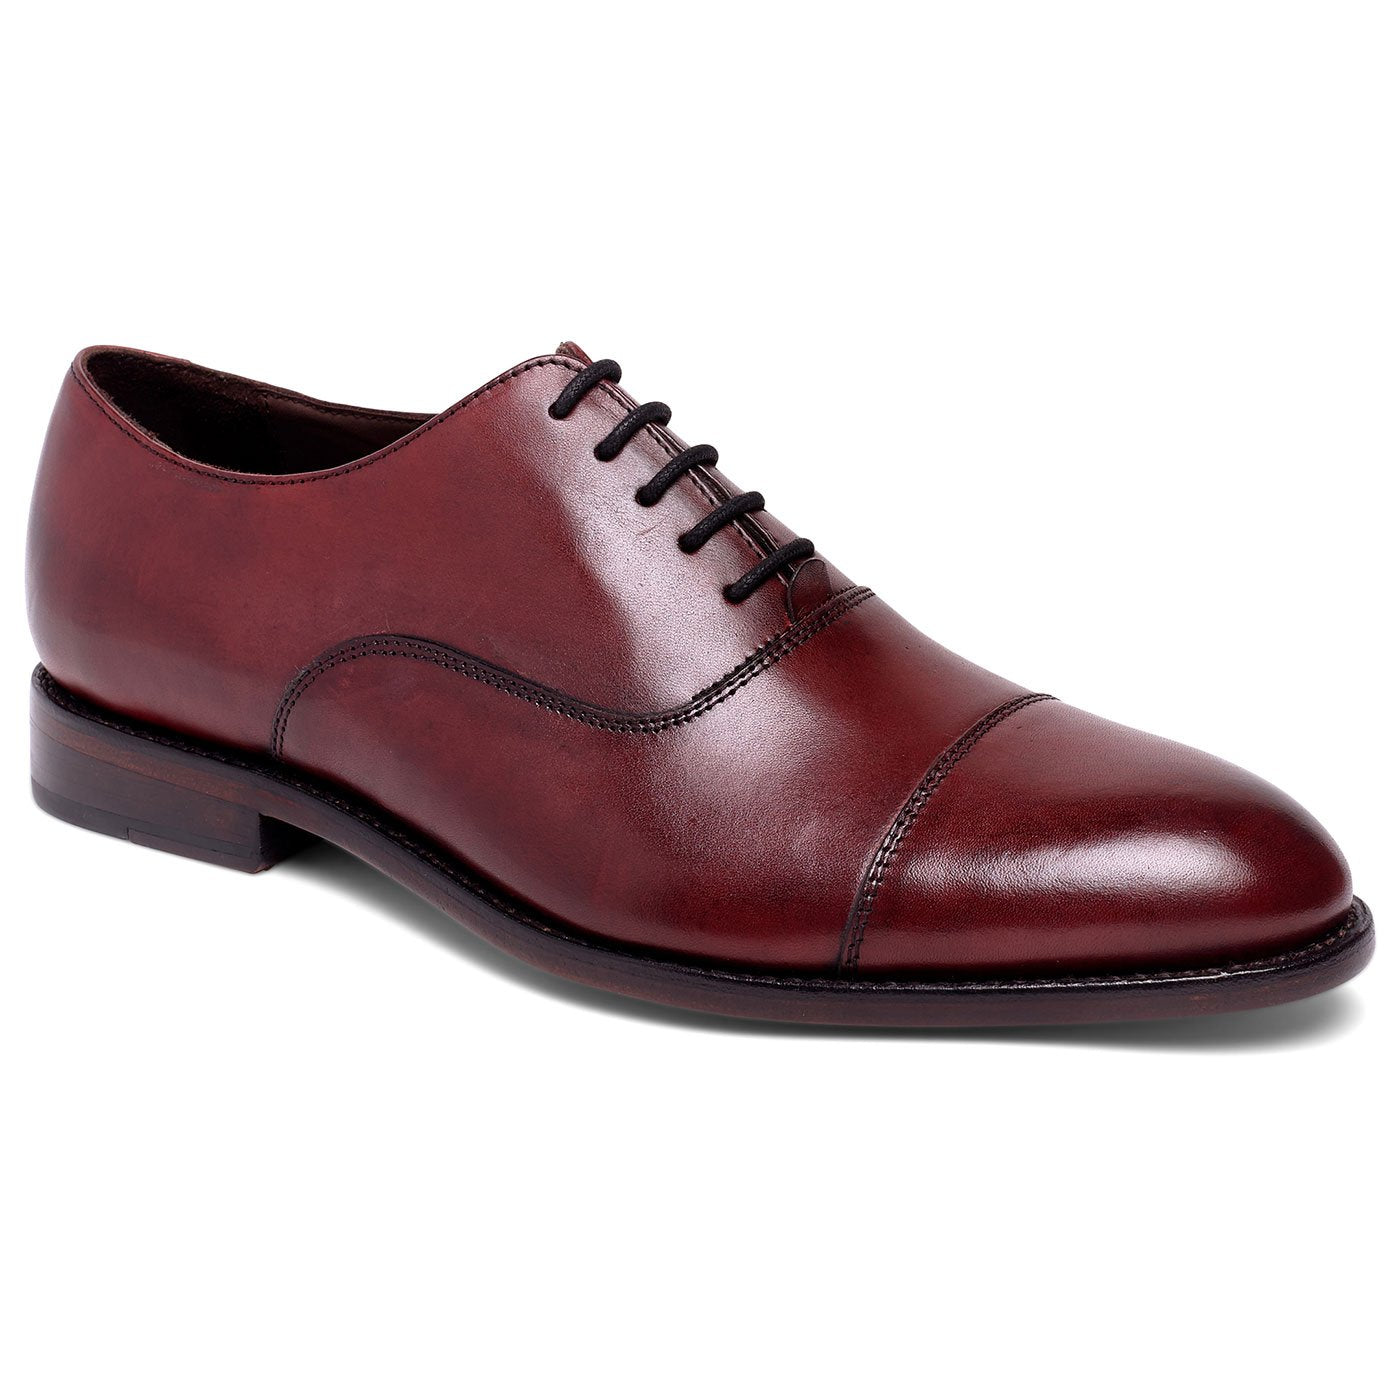 Clinton Cap-toe Oxford Oxblood